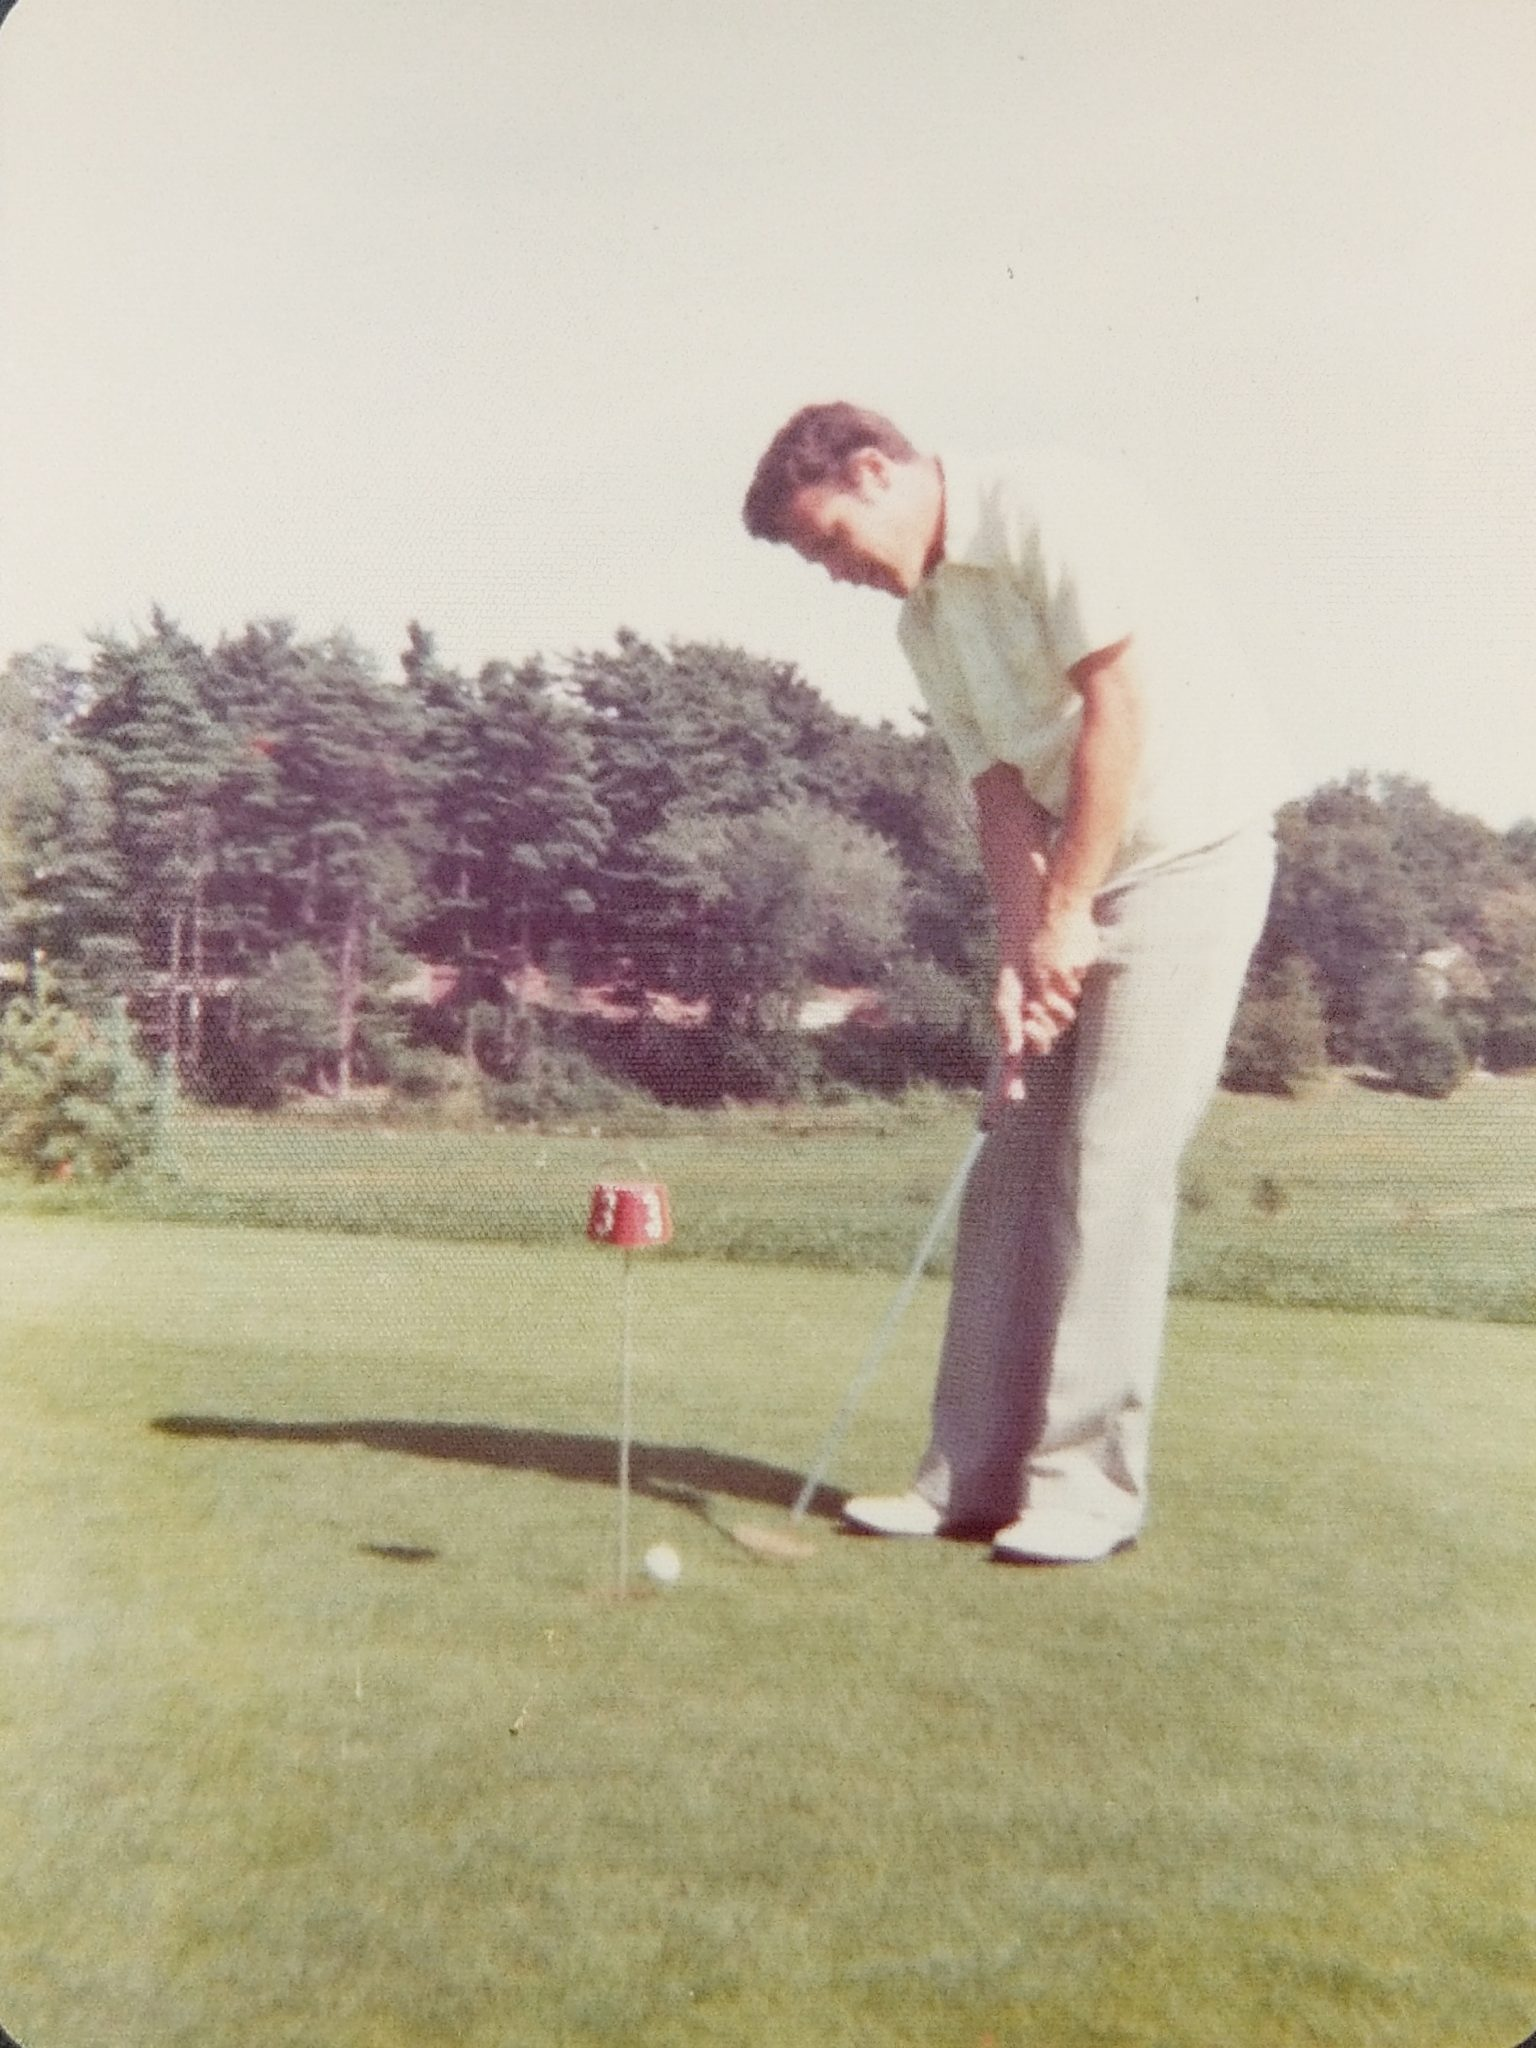 My Dad Enjoying A Round of Golf - Finding Silver Pennies